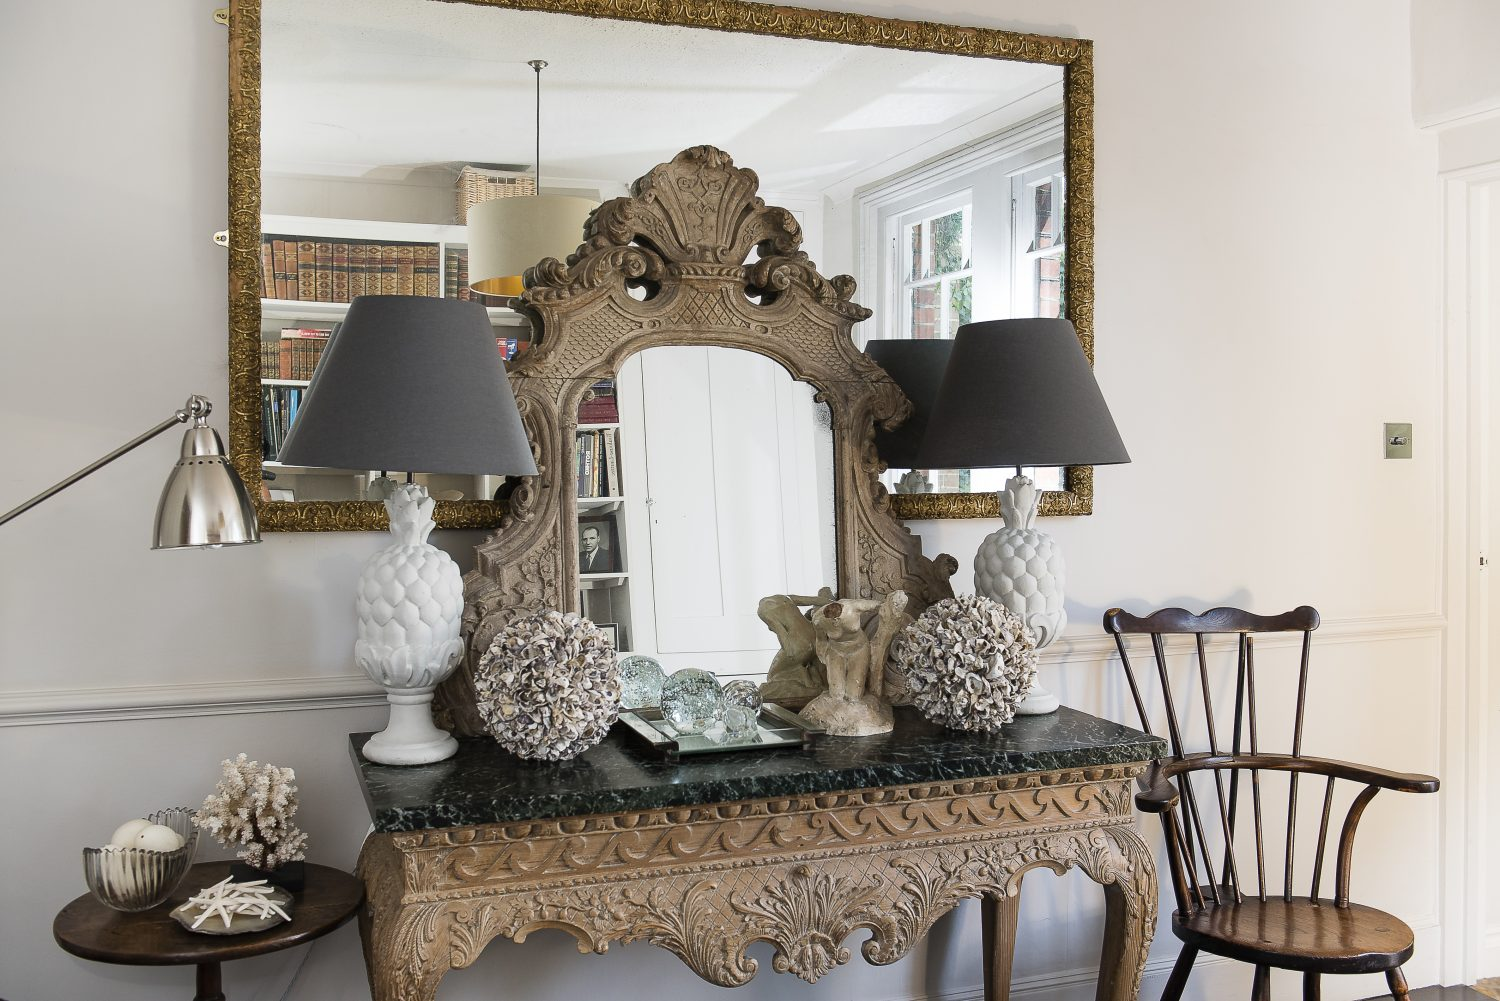 In Streett's study, decorated by Charlotte, the George III marble-topped table and rococo mirror are from Streett's collection. Charlotte added the 1970s French pineapple lamps. The chair is a Windsor Goldsmith, from circa 1890